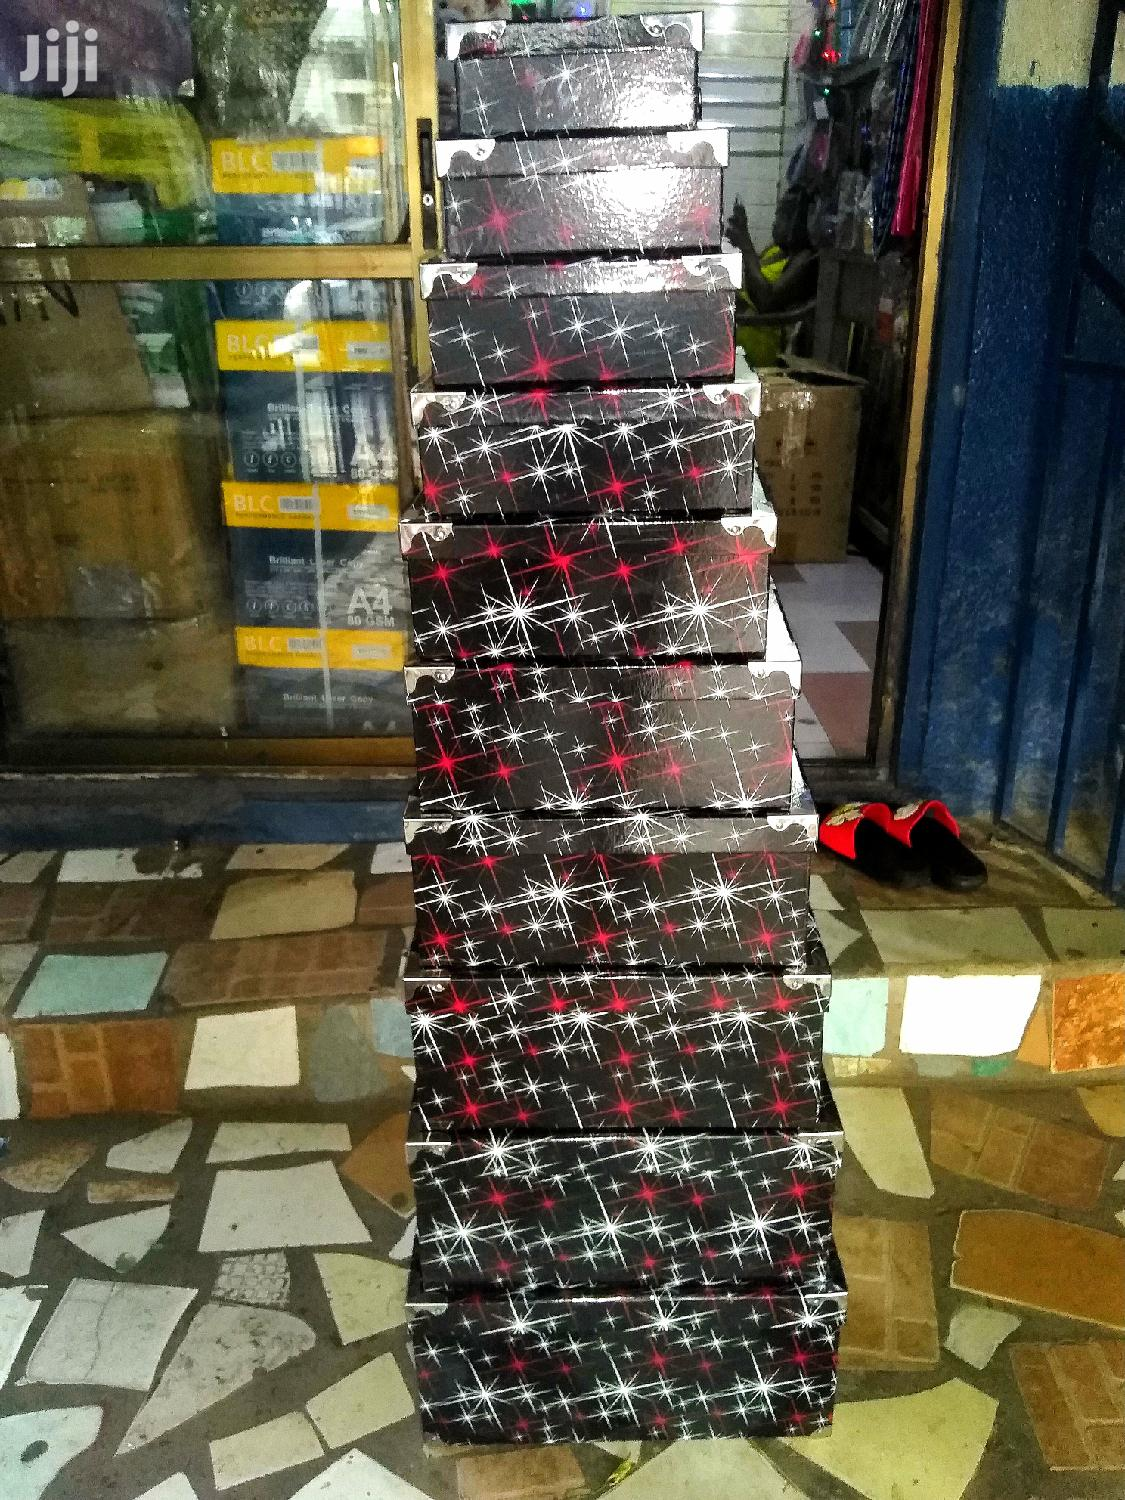 Strong Gift Boxes   Home Accessories for sale in Accra Metropolitan, Greater Accra, Ghana